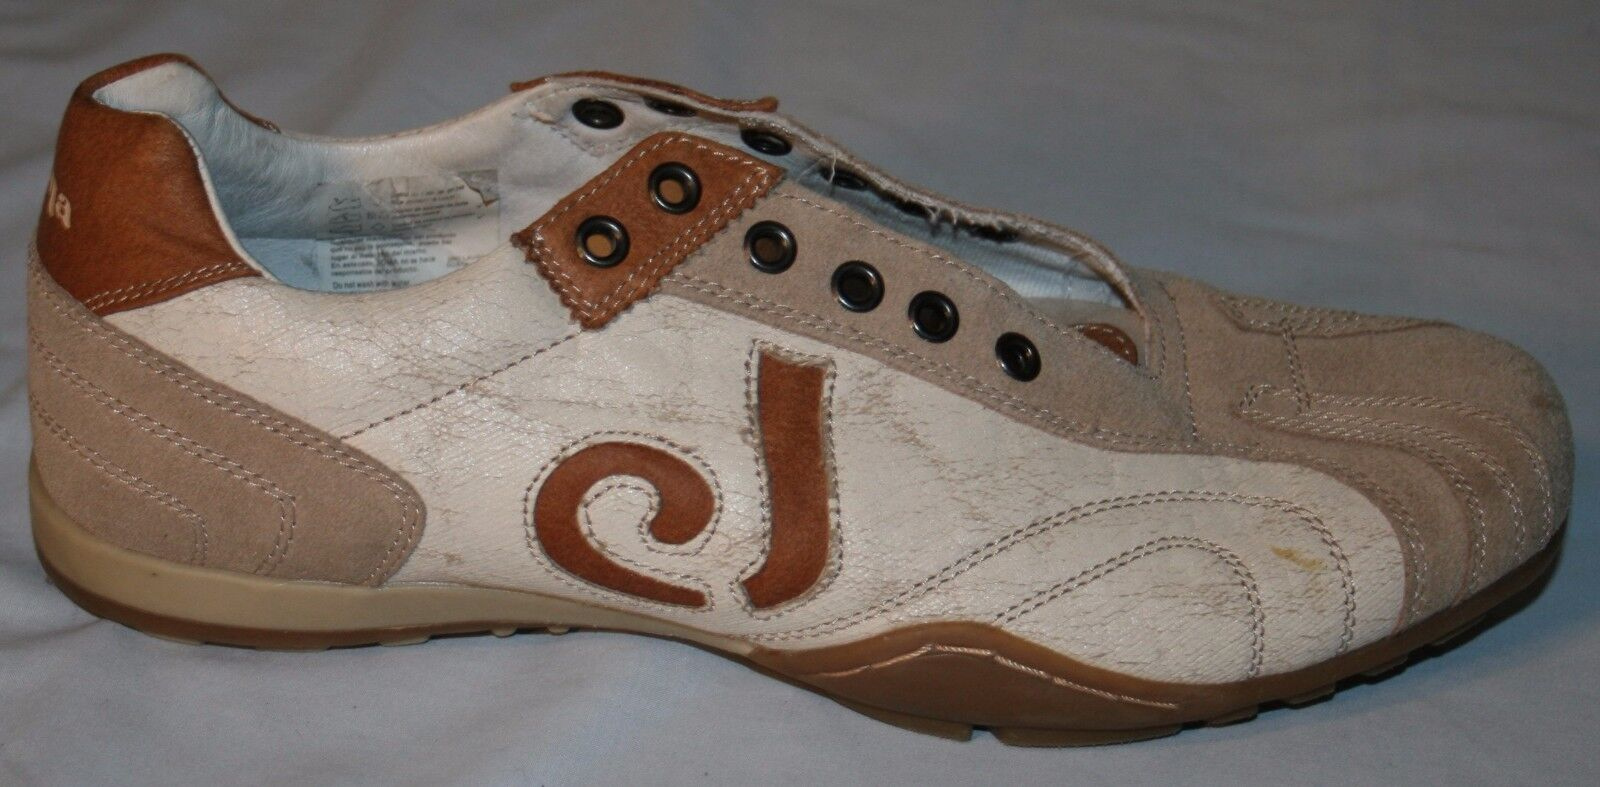 Joma Sneakers shoes Sz 9 Brown Beige Casual Athletic Leather Mens